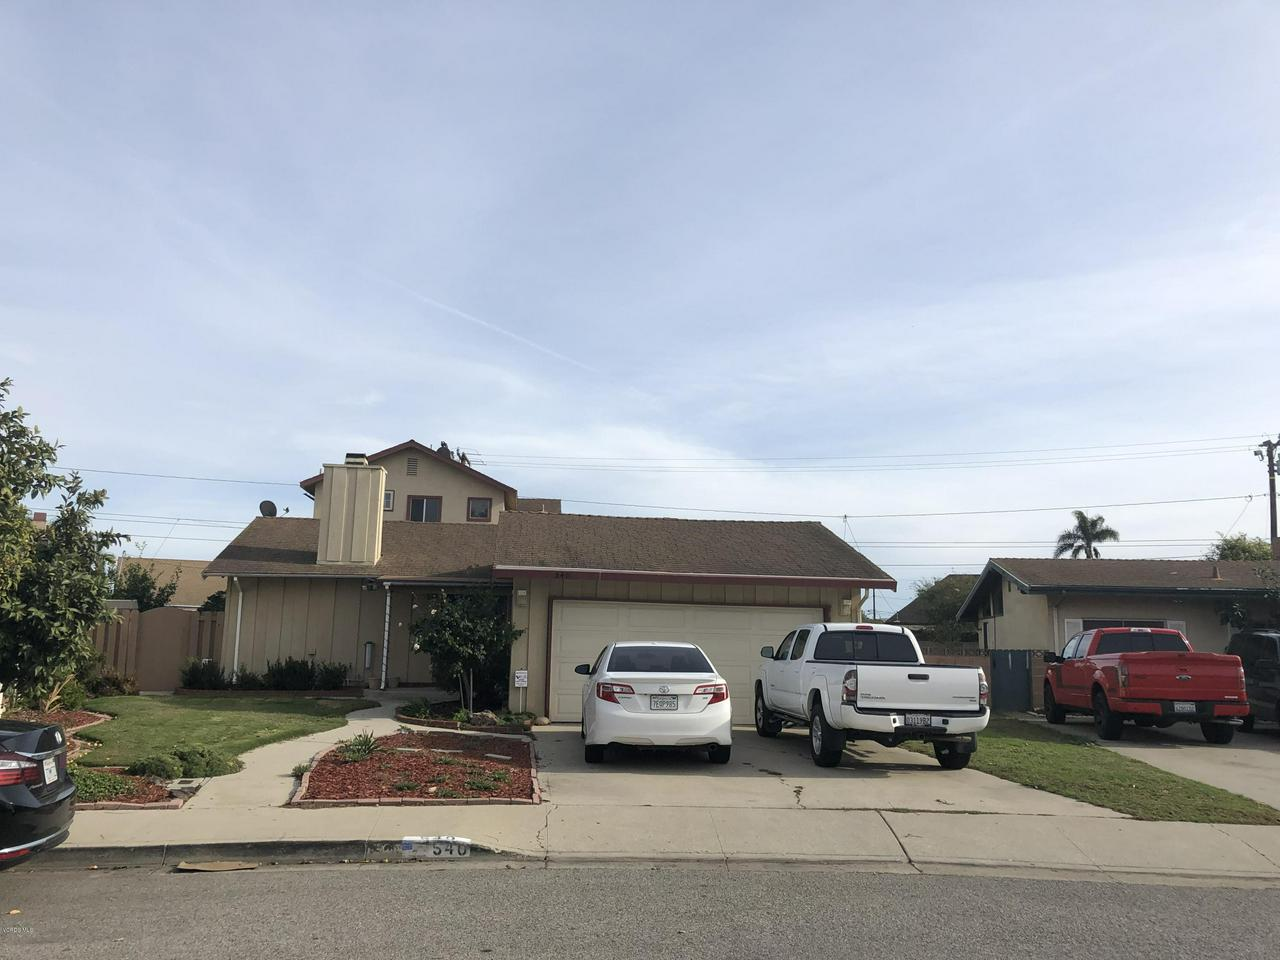 Photo of 540 NORTH N STREET, Oxnard, CA 93030